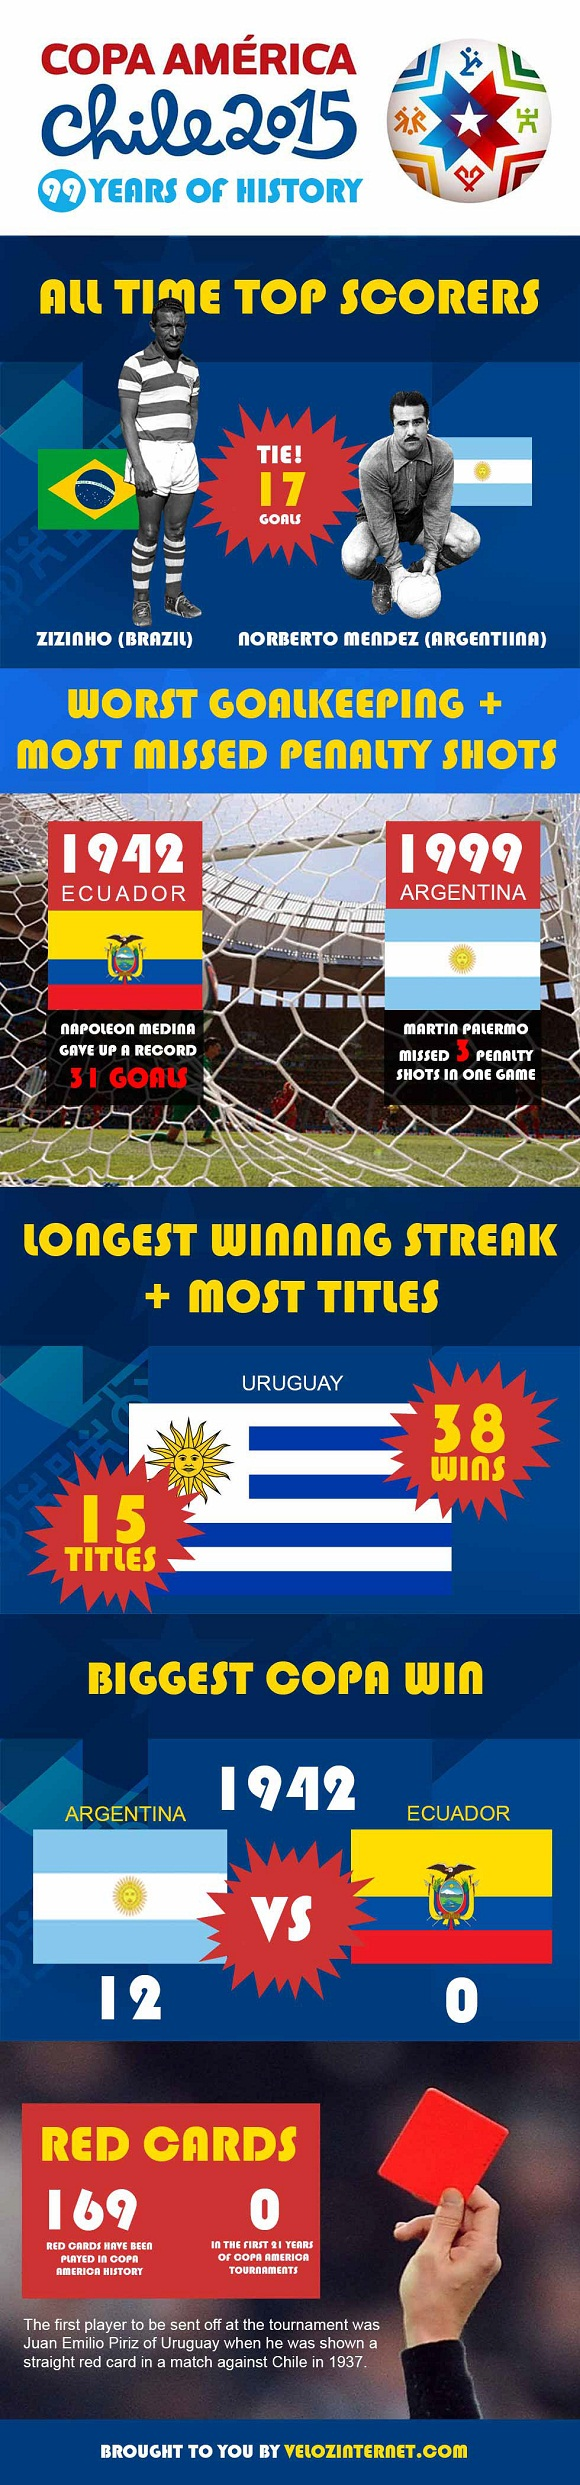 copaamericainfographic2015